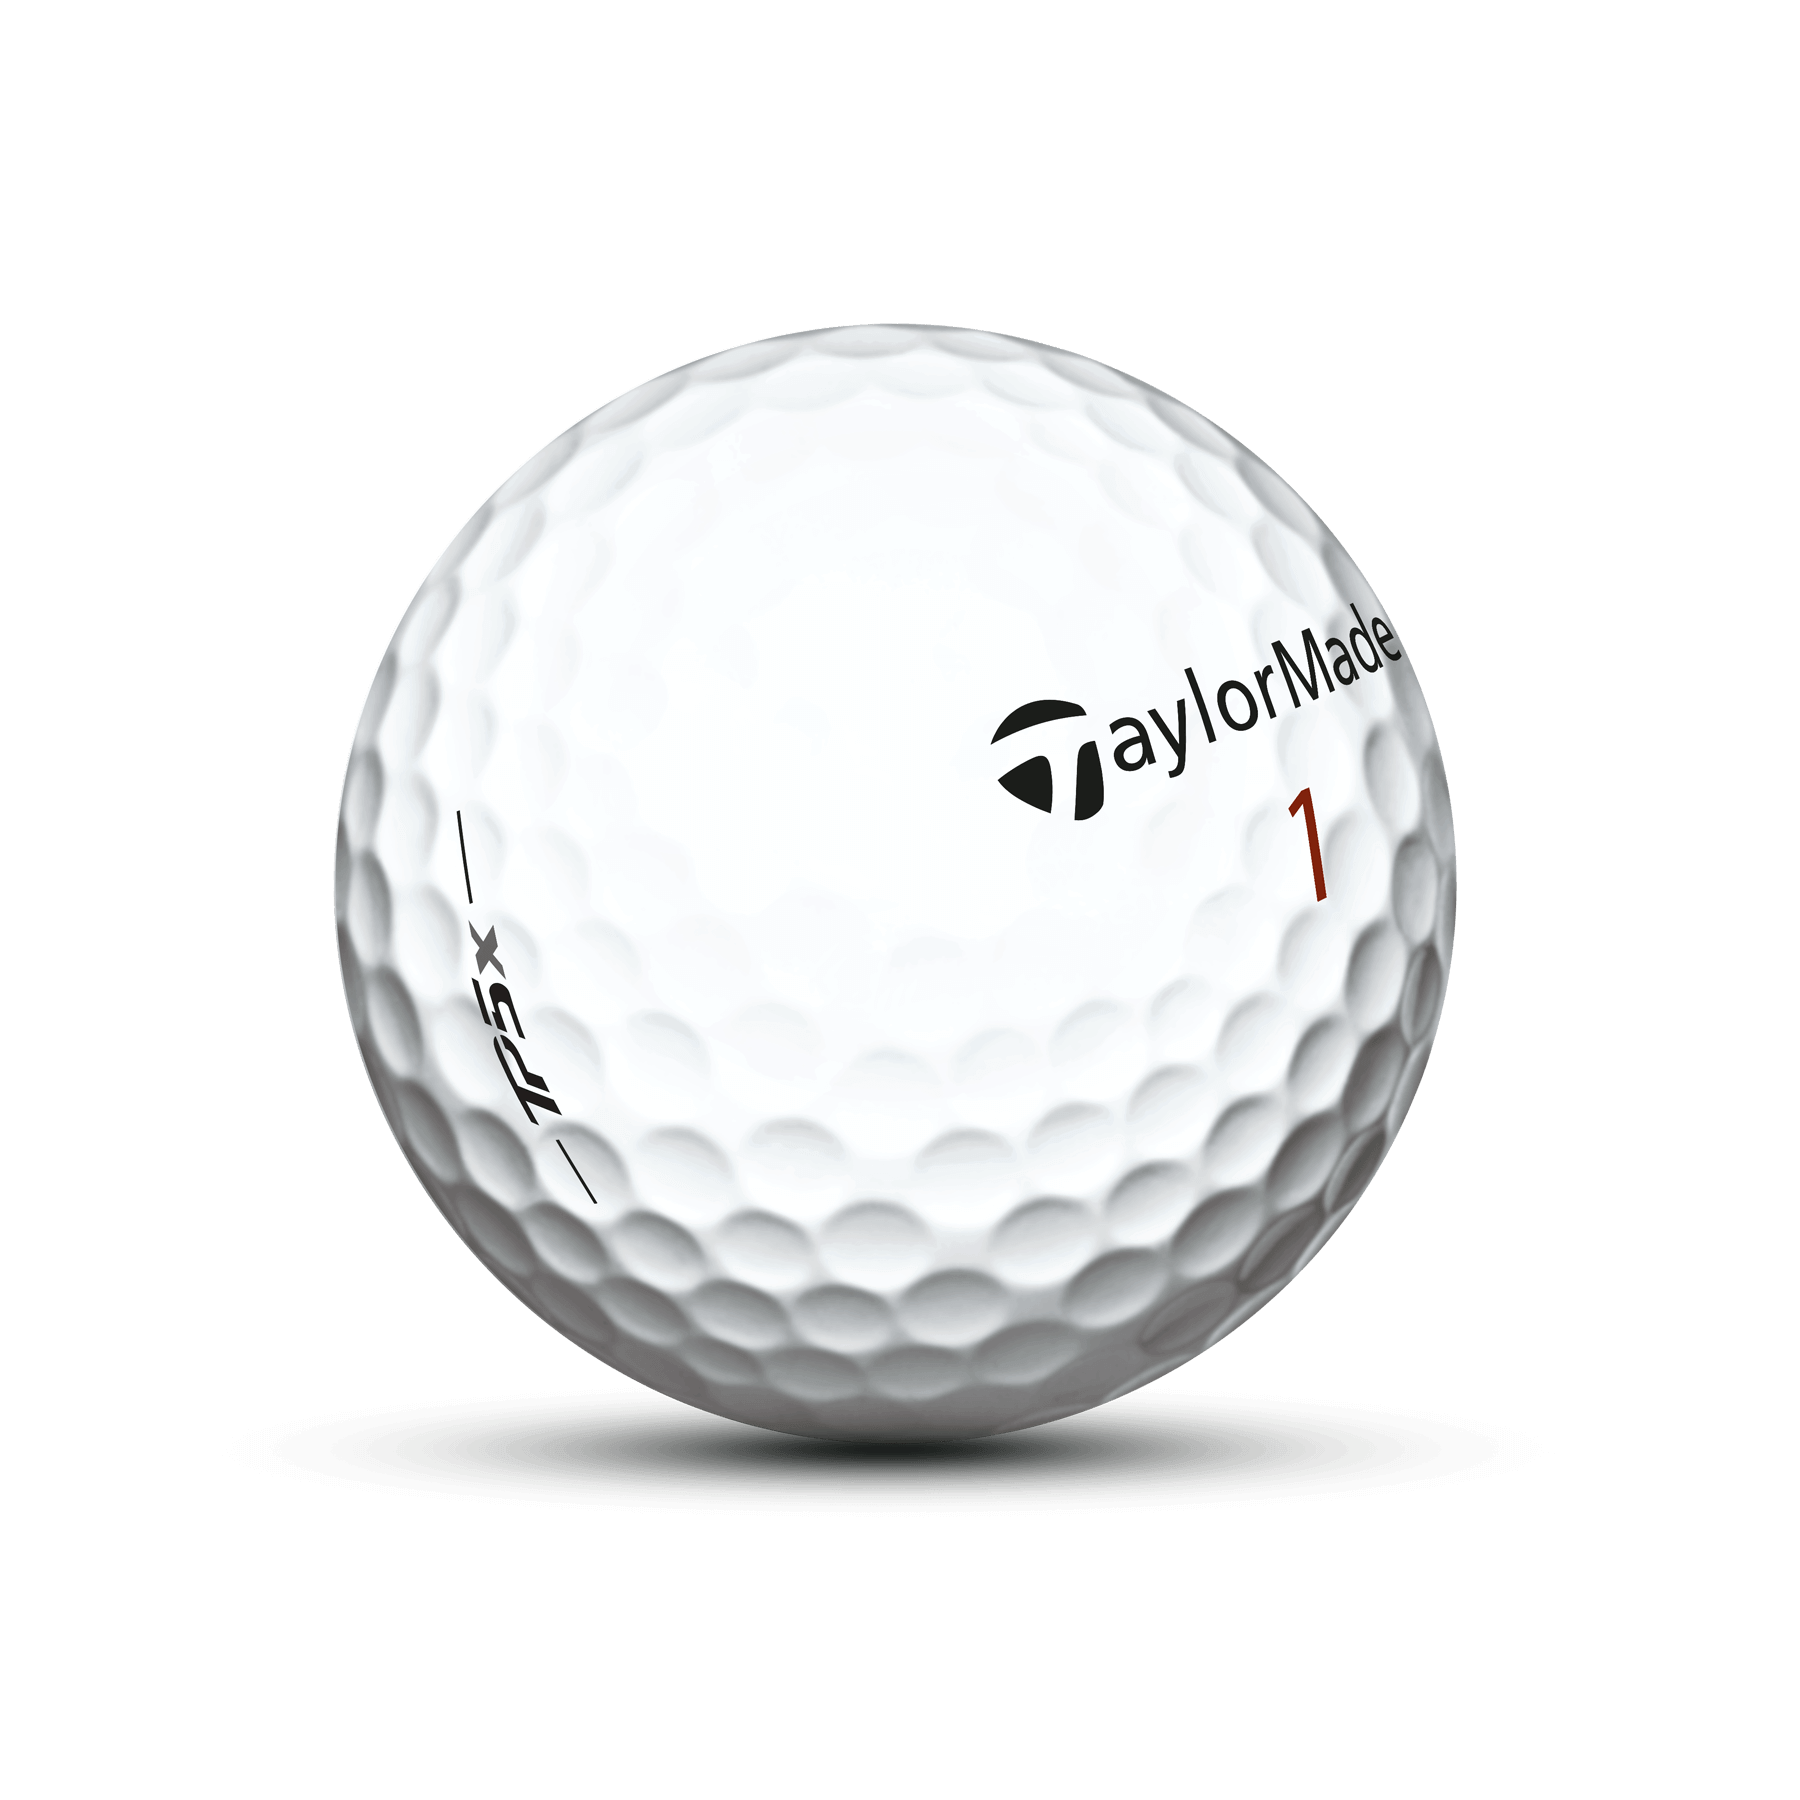 TaylorMade TP5X Golf Ball Review